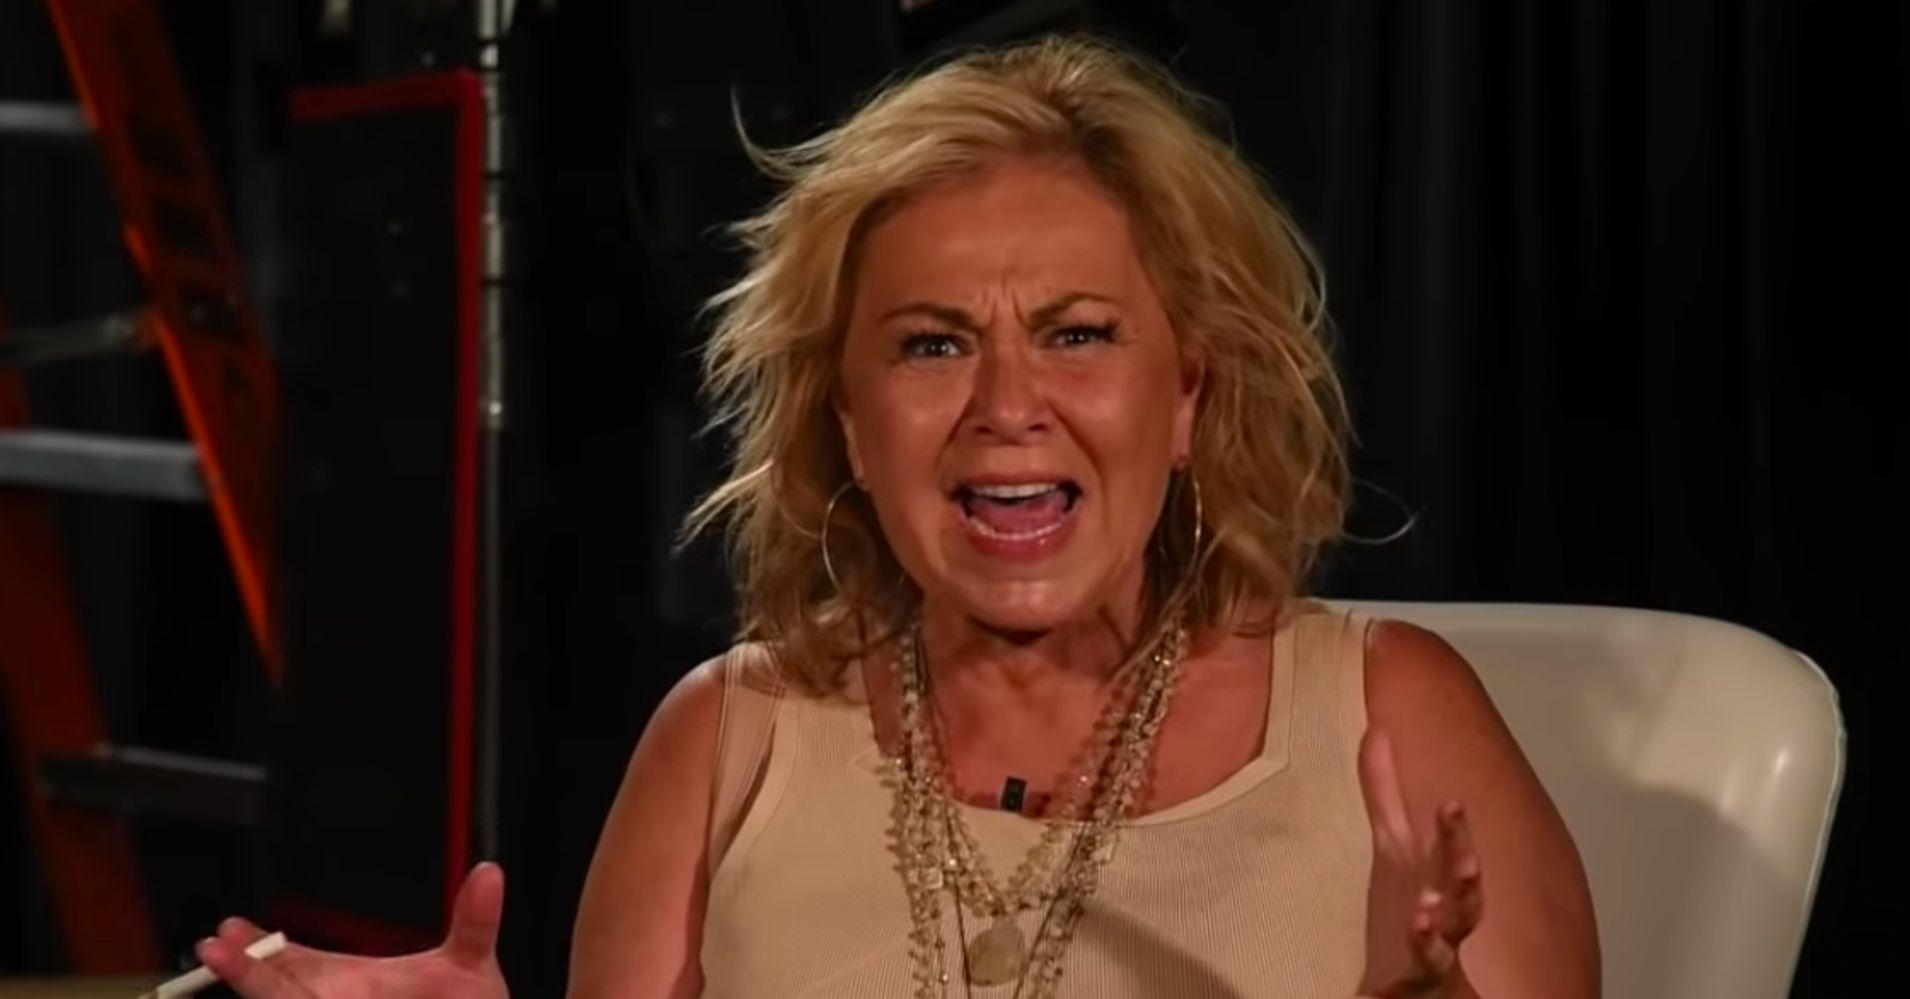 Roseanne Posts Outburst About Valerie Jarrett: 'I Thought The Bitch Was White!'